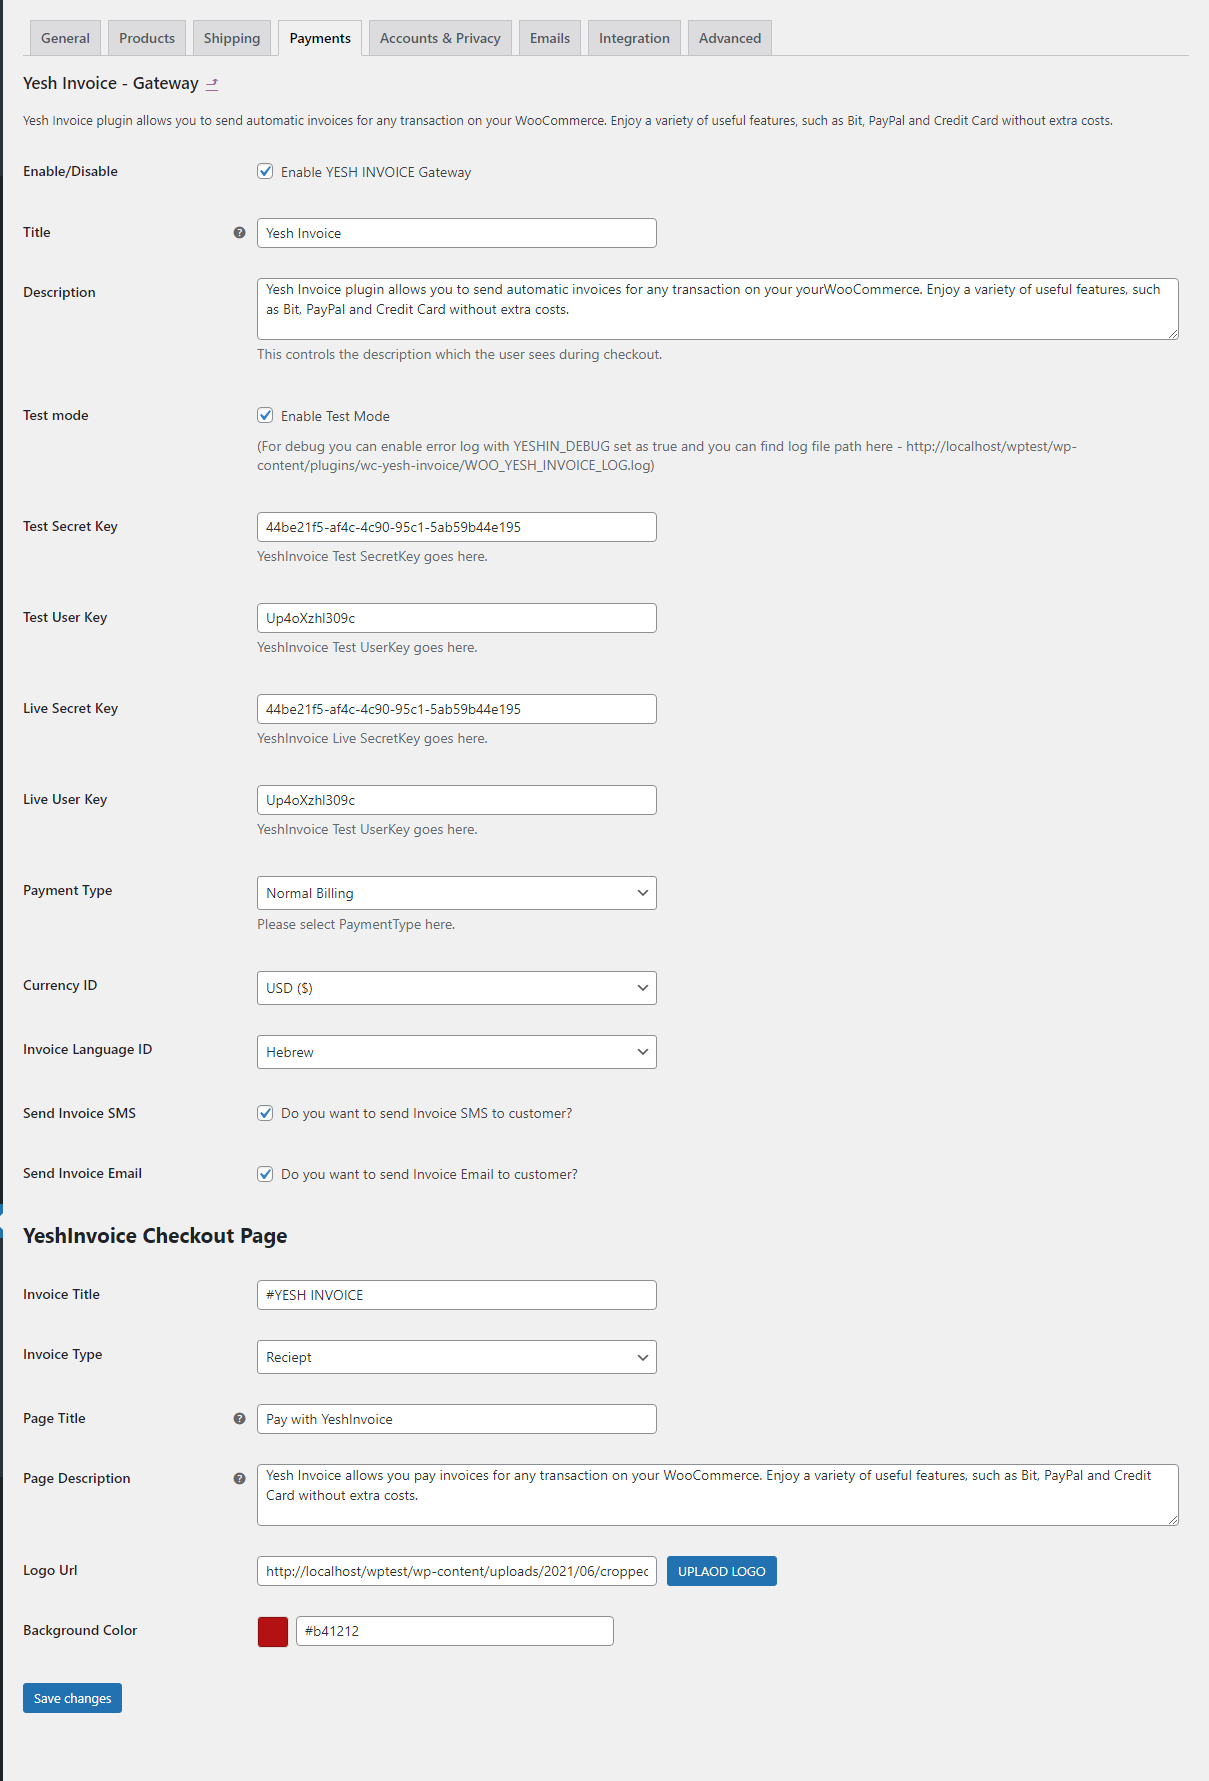 Enable Yesh Invoice Gateway and fill all settings.